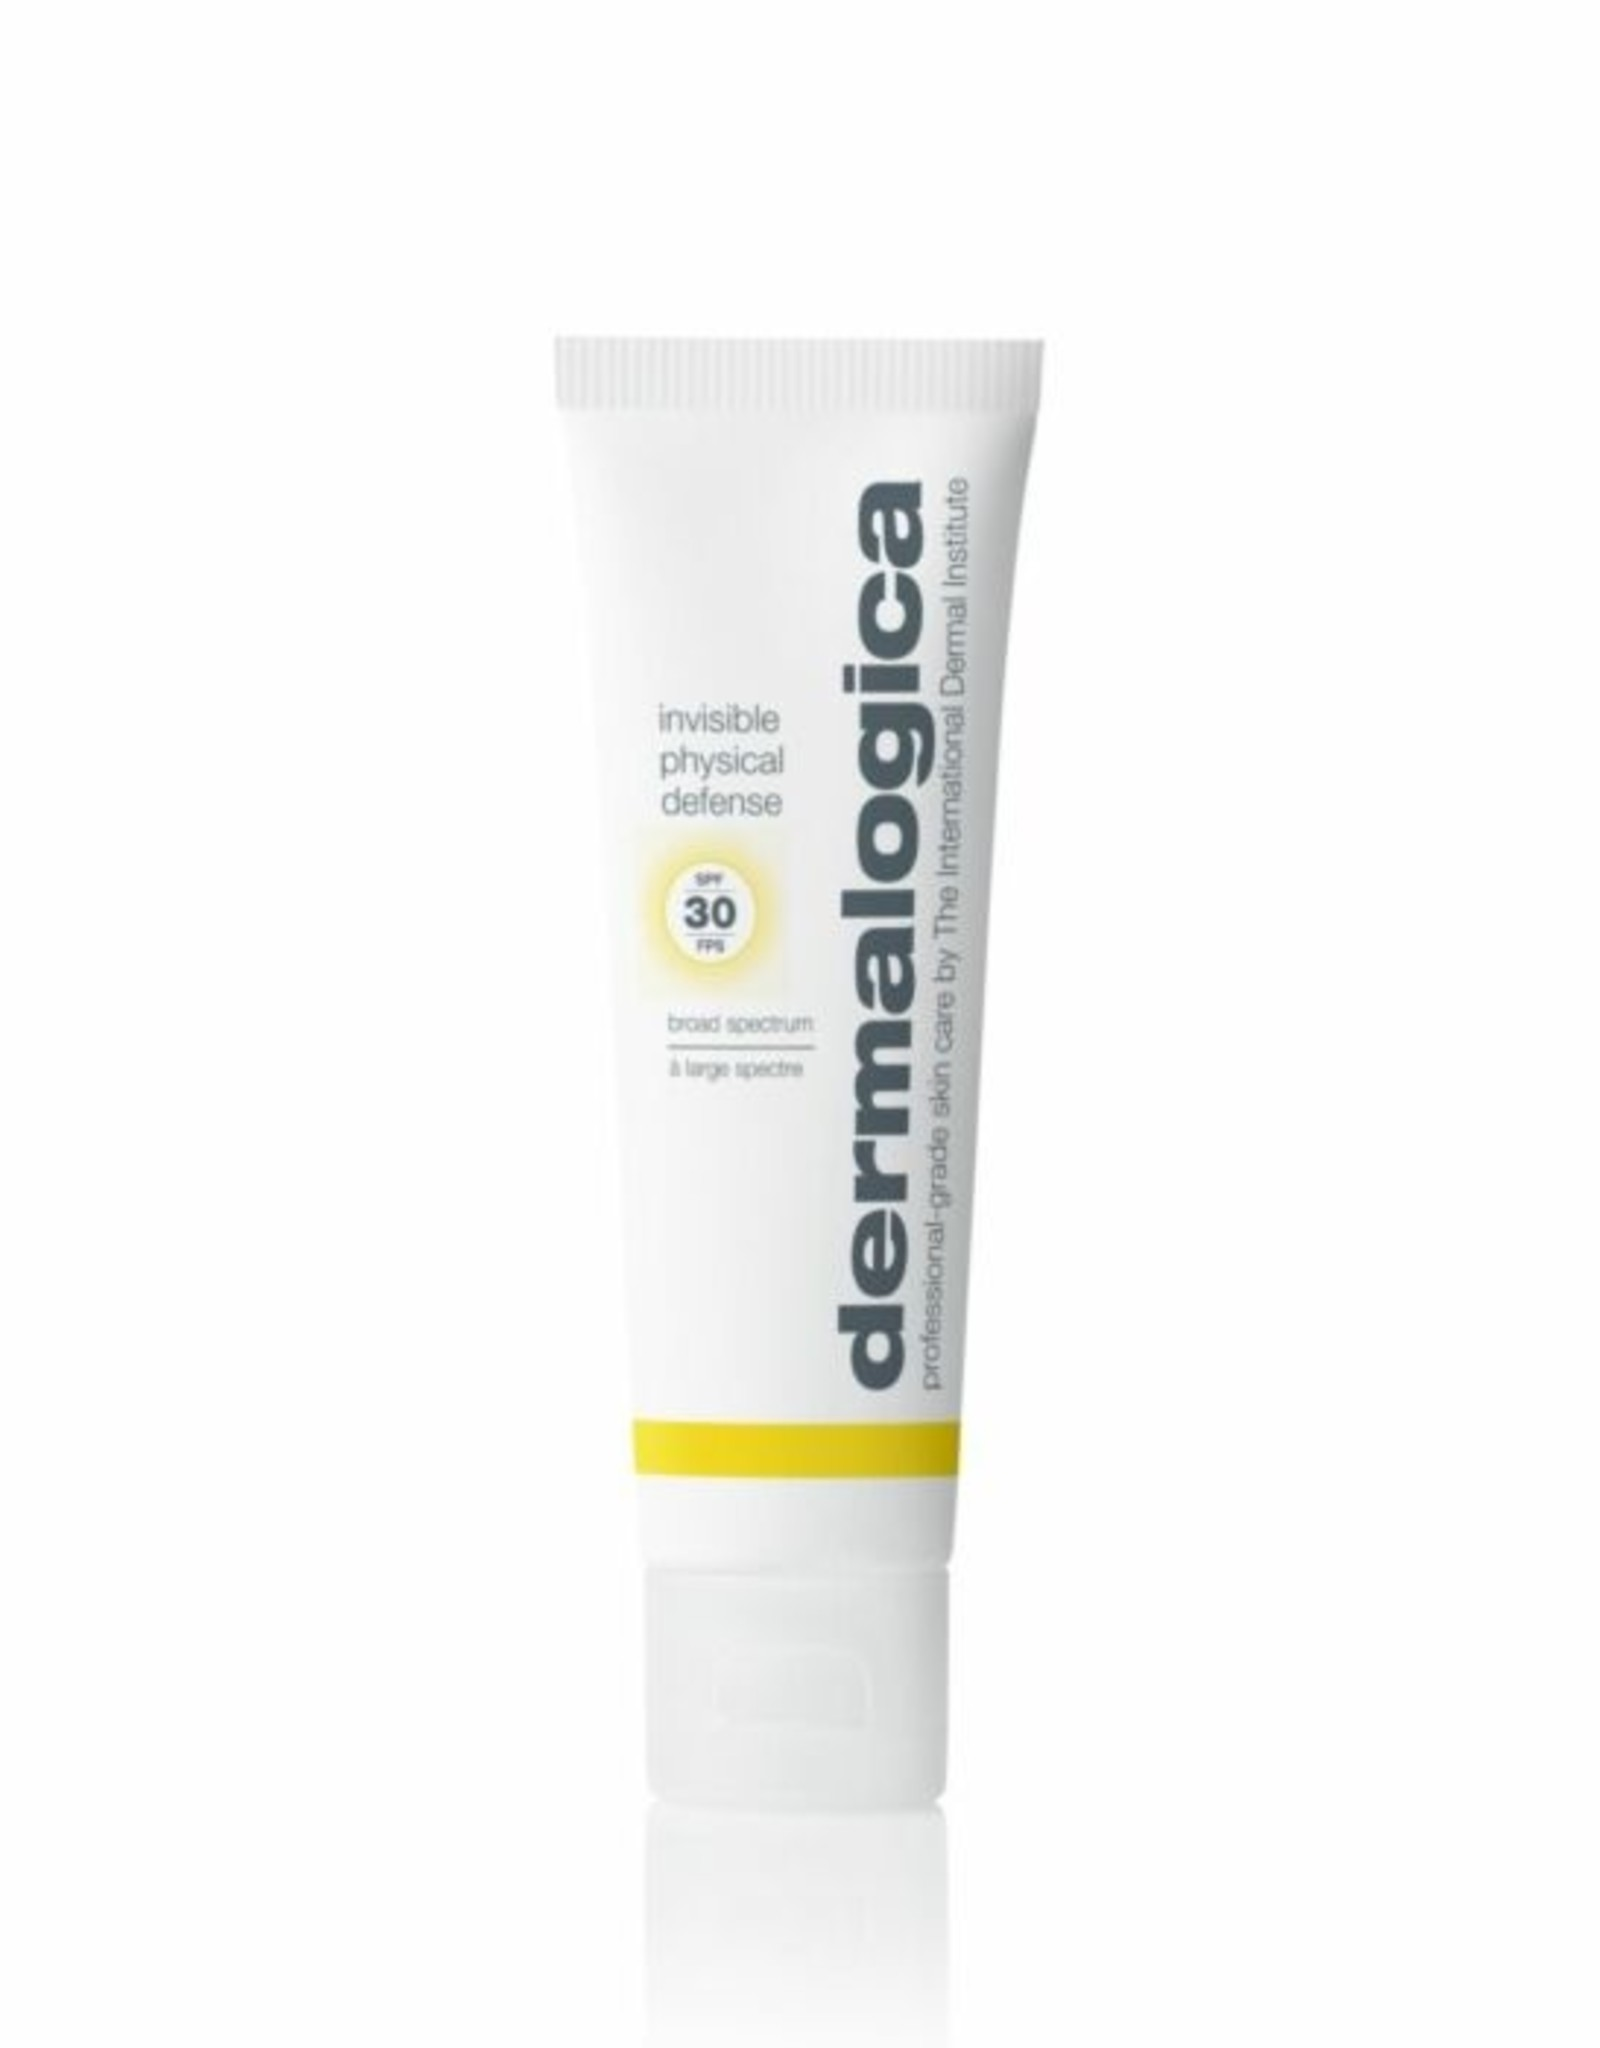 Dermalogica Invisible Physical Defense SPF30 50ml - Dermalogica